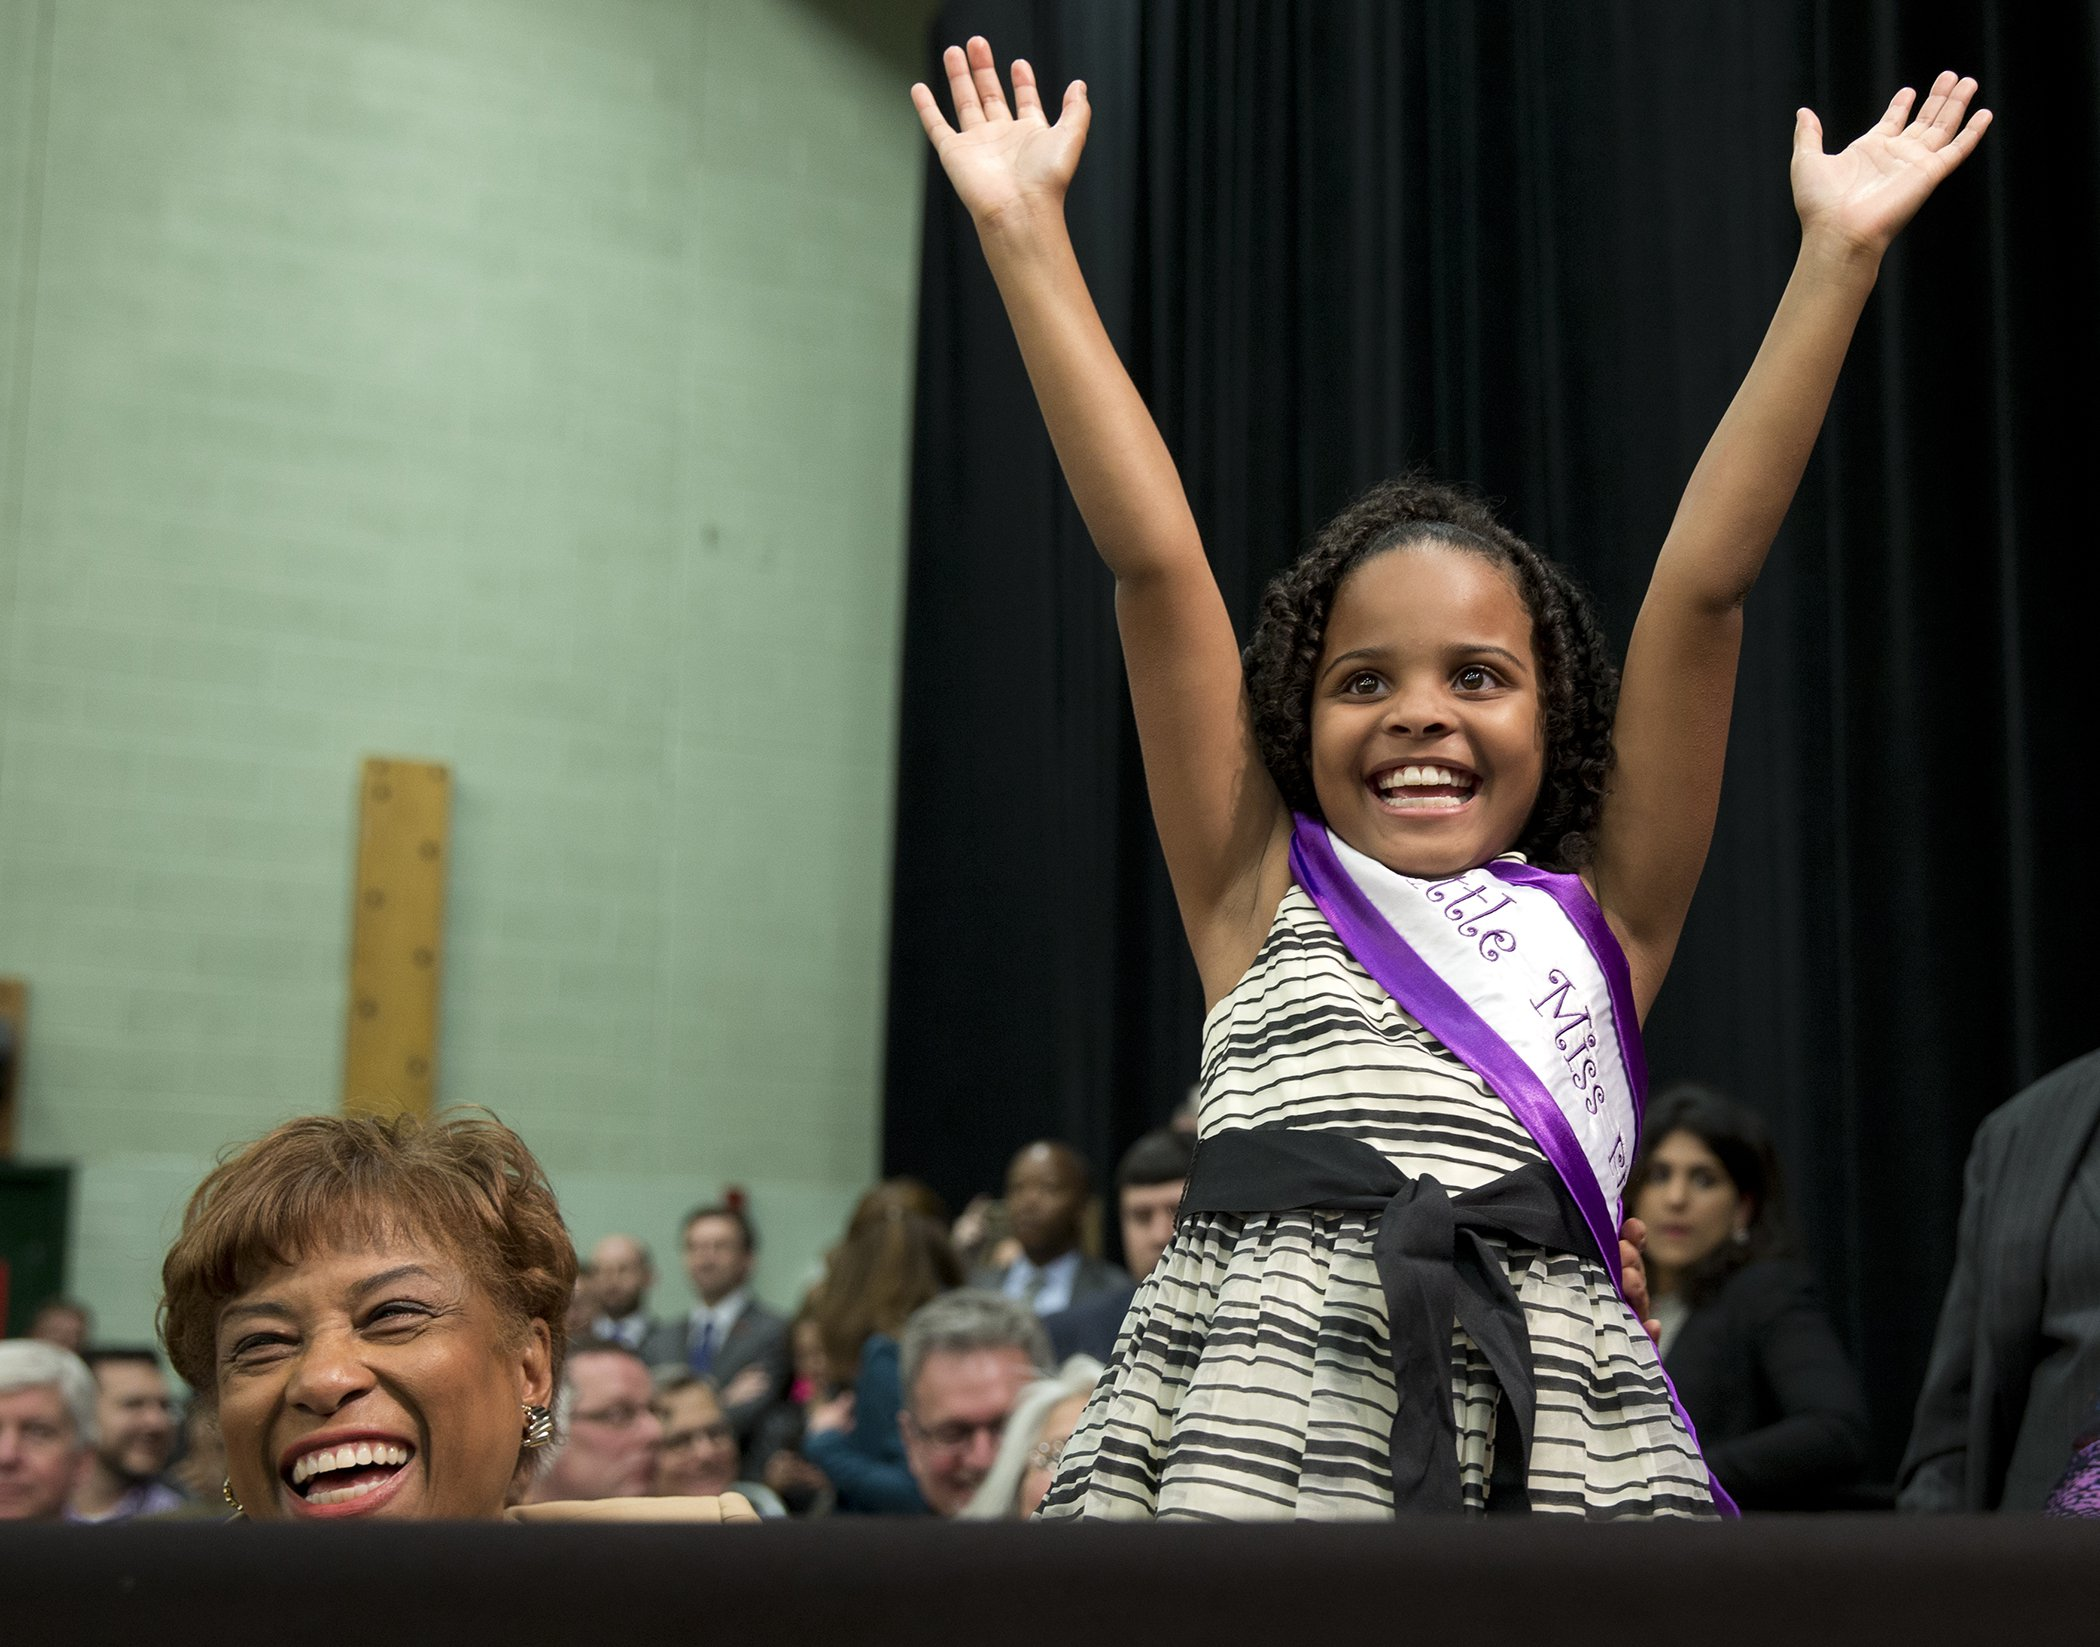 Little-Miss-Flint-Mari-Copeny-Education-MLK-Day.jpg